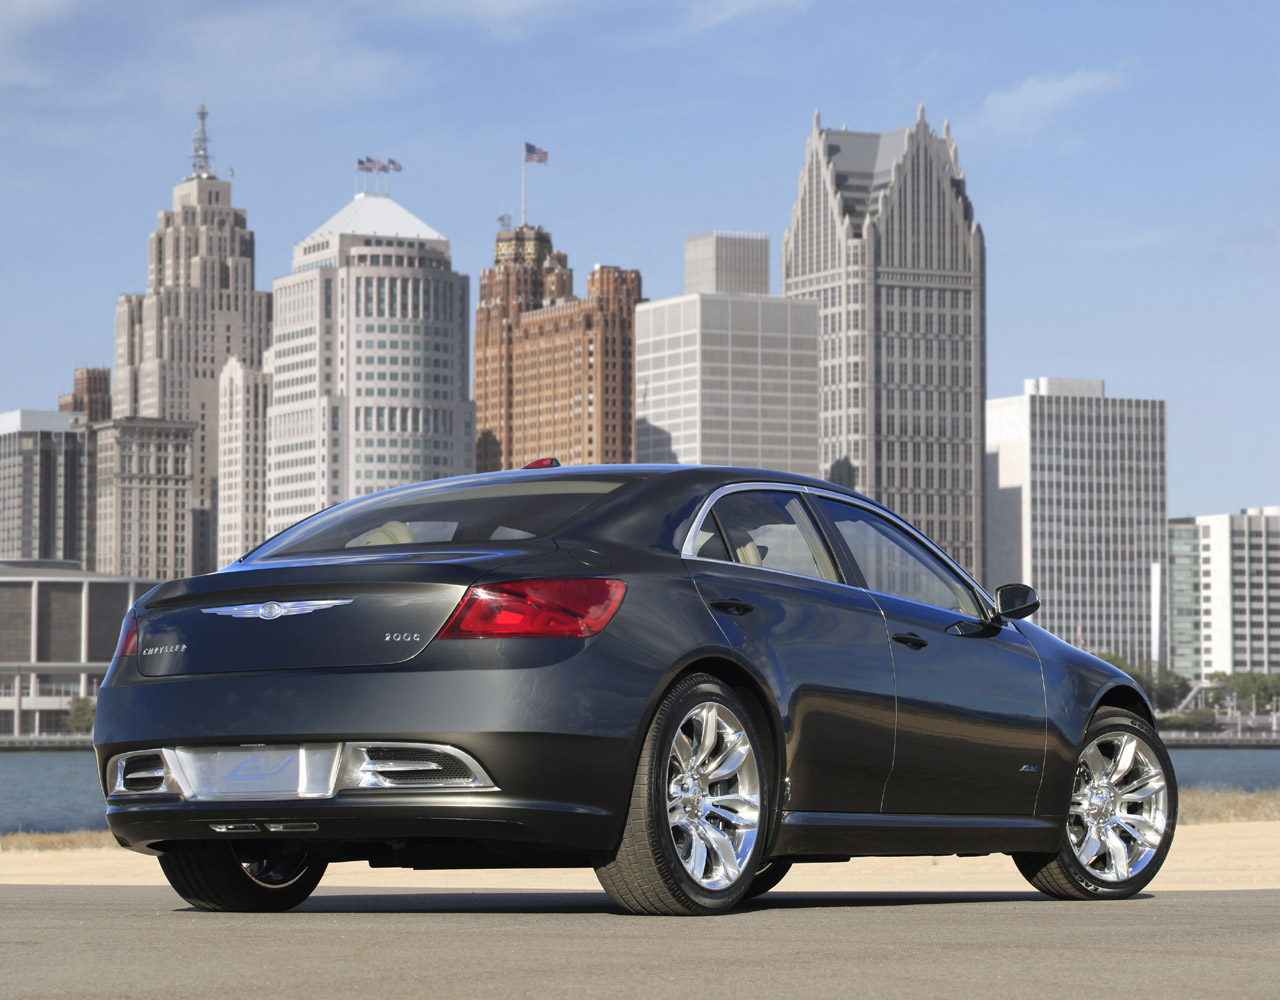 chrysler-200c-stock-1280_0028.jpg